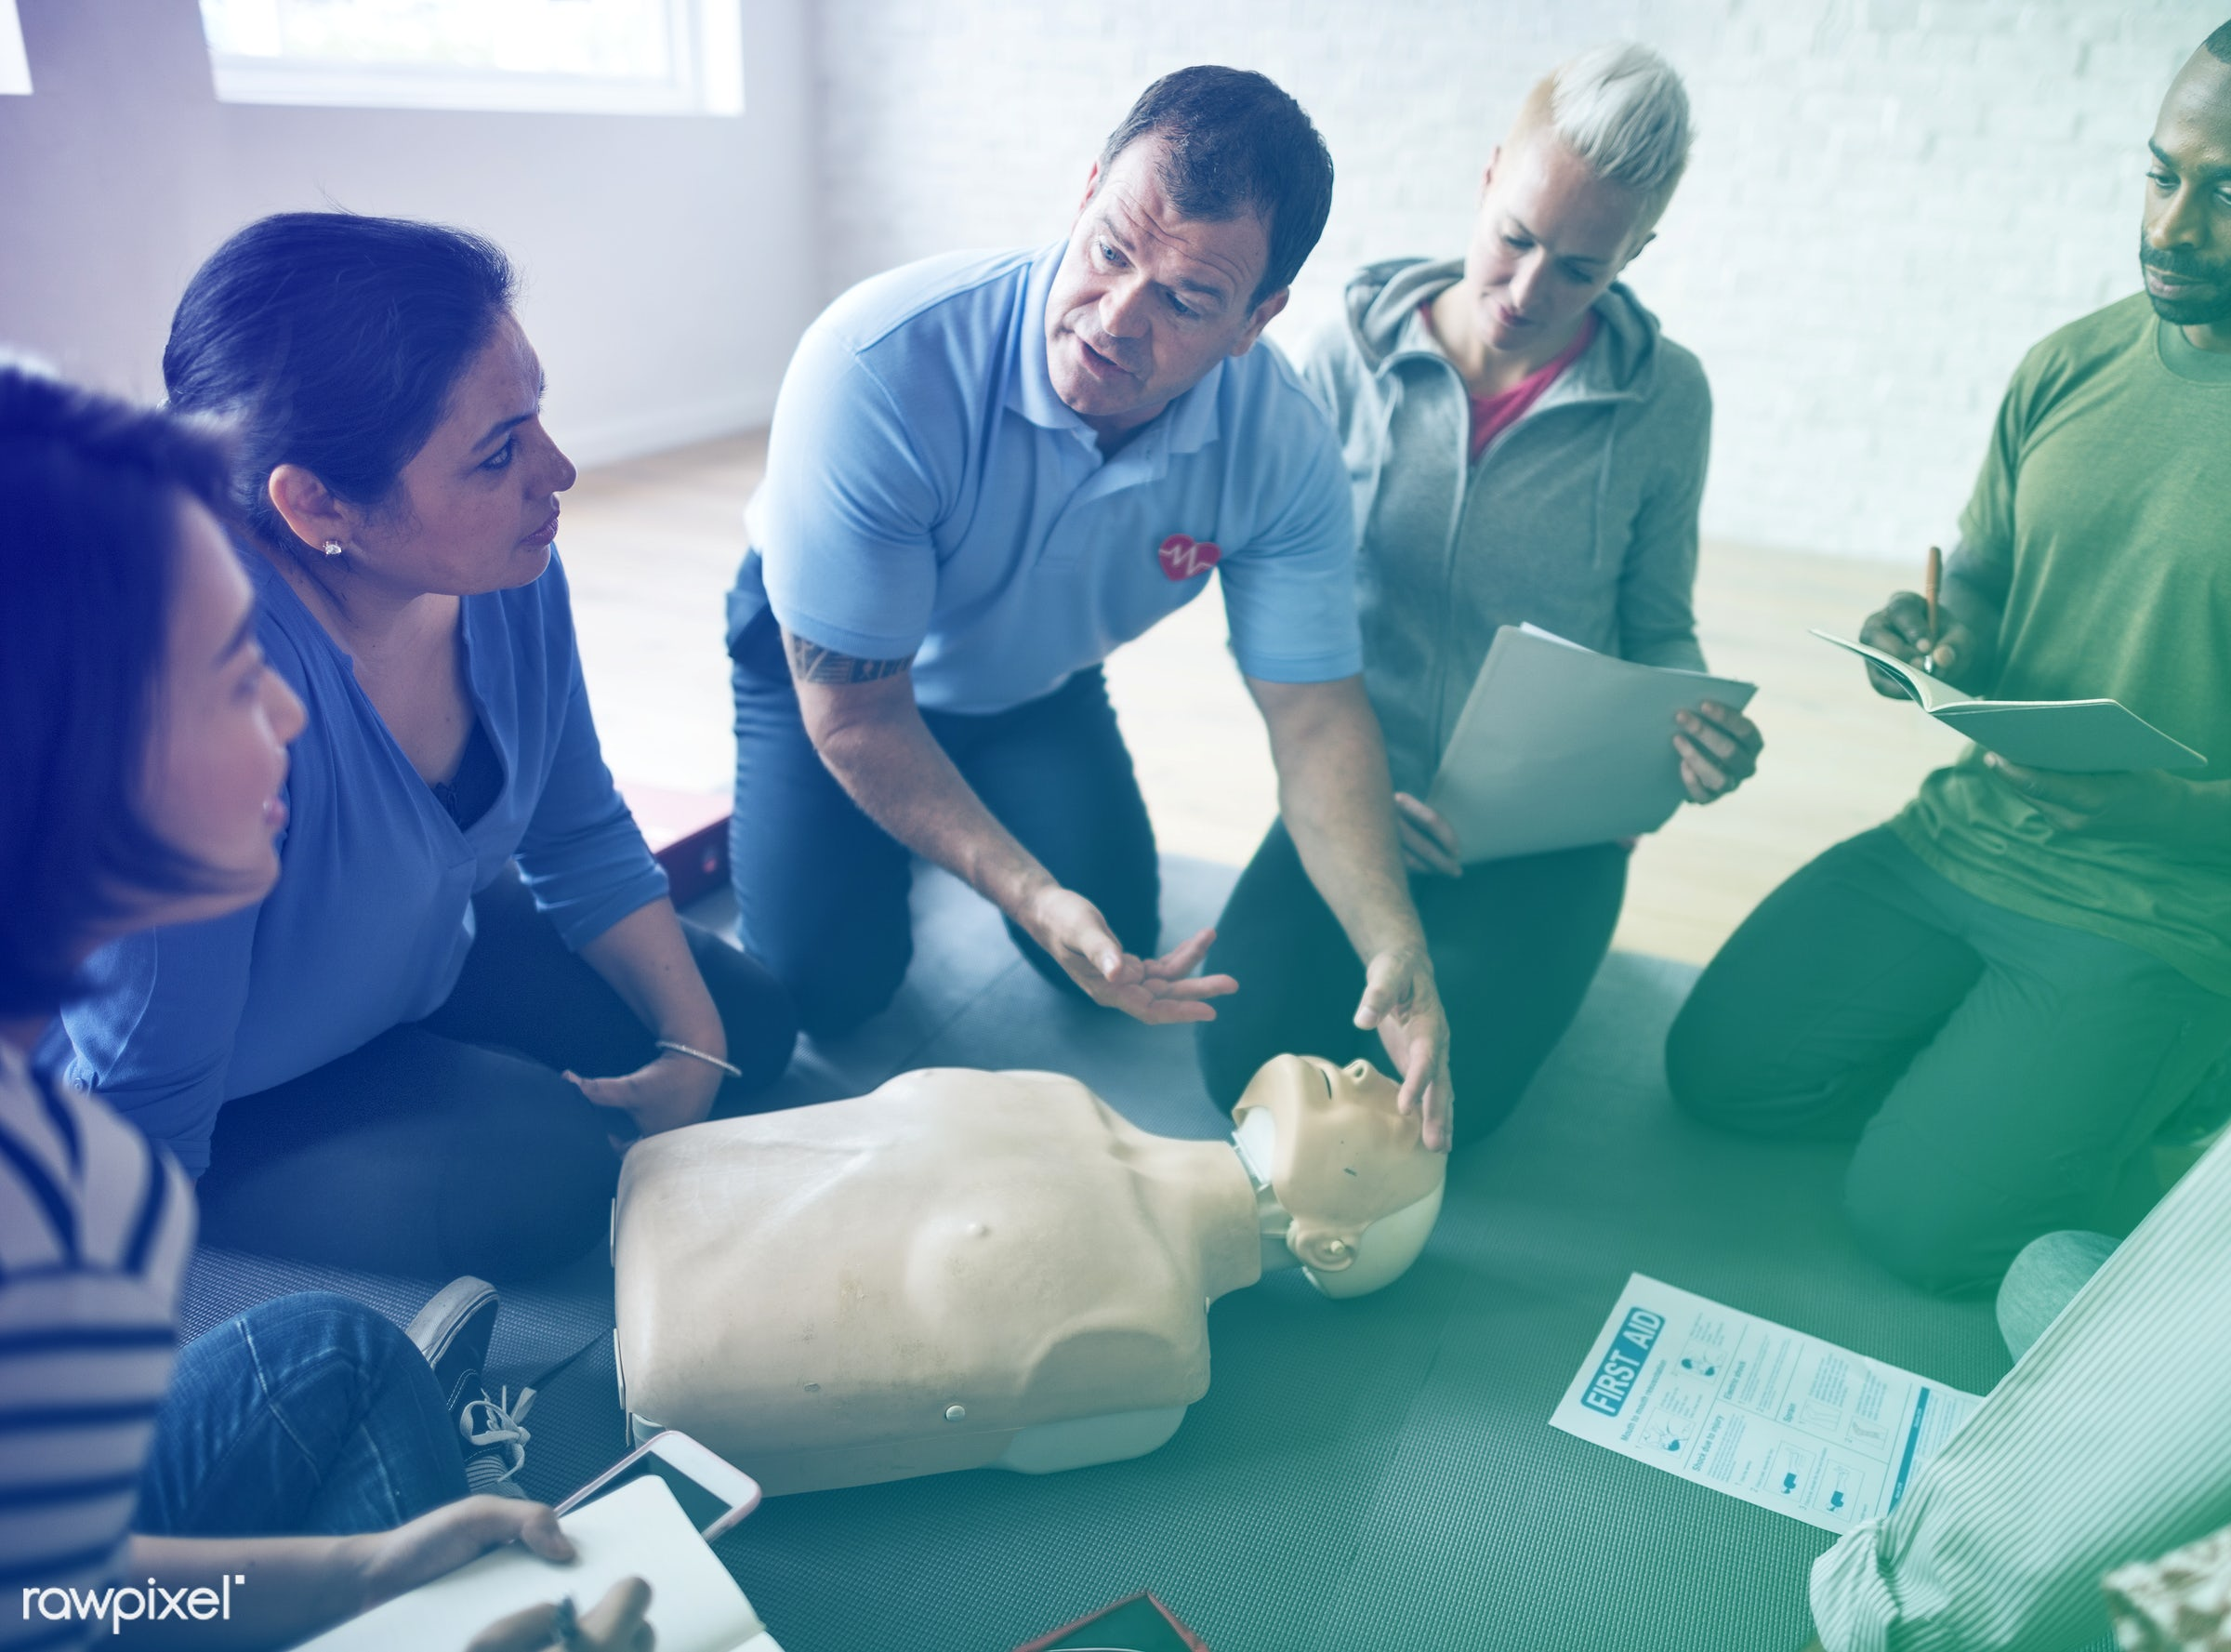 person, save, resuscitation, treatment, emergency, people, course, lifeline, help, medical, event, lifestyle, certified, cpr...